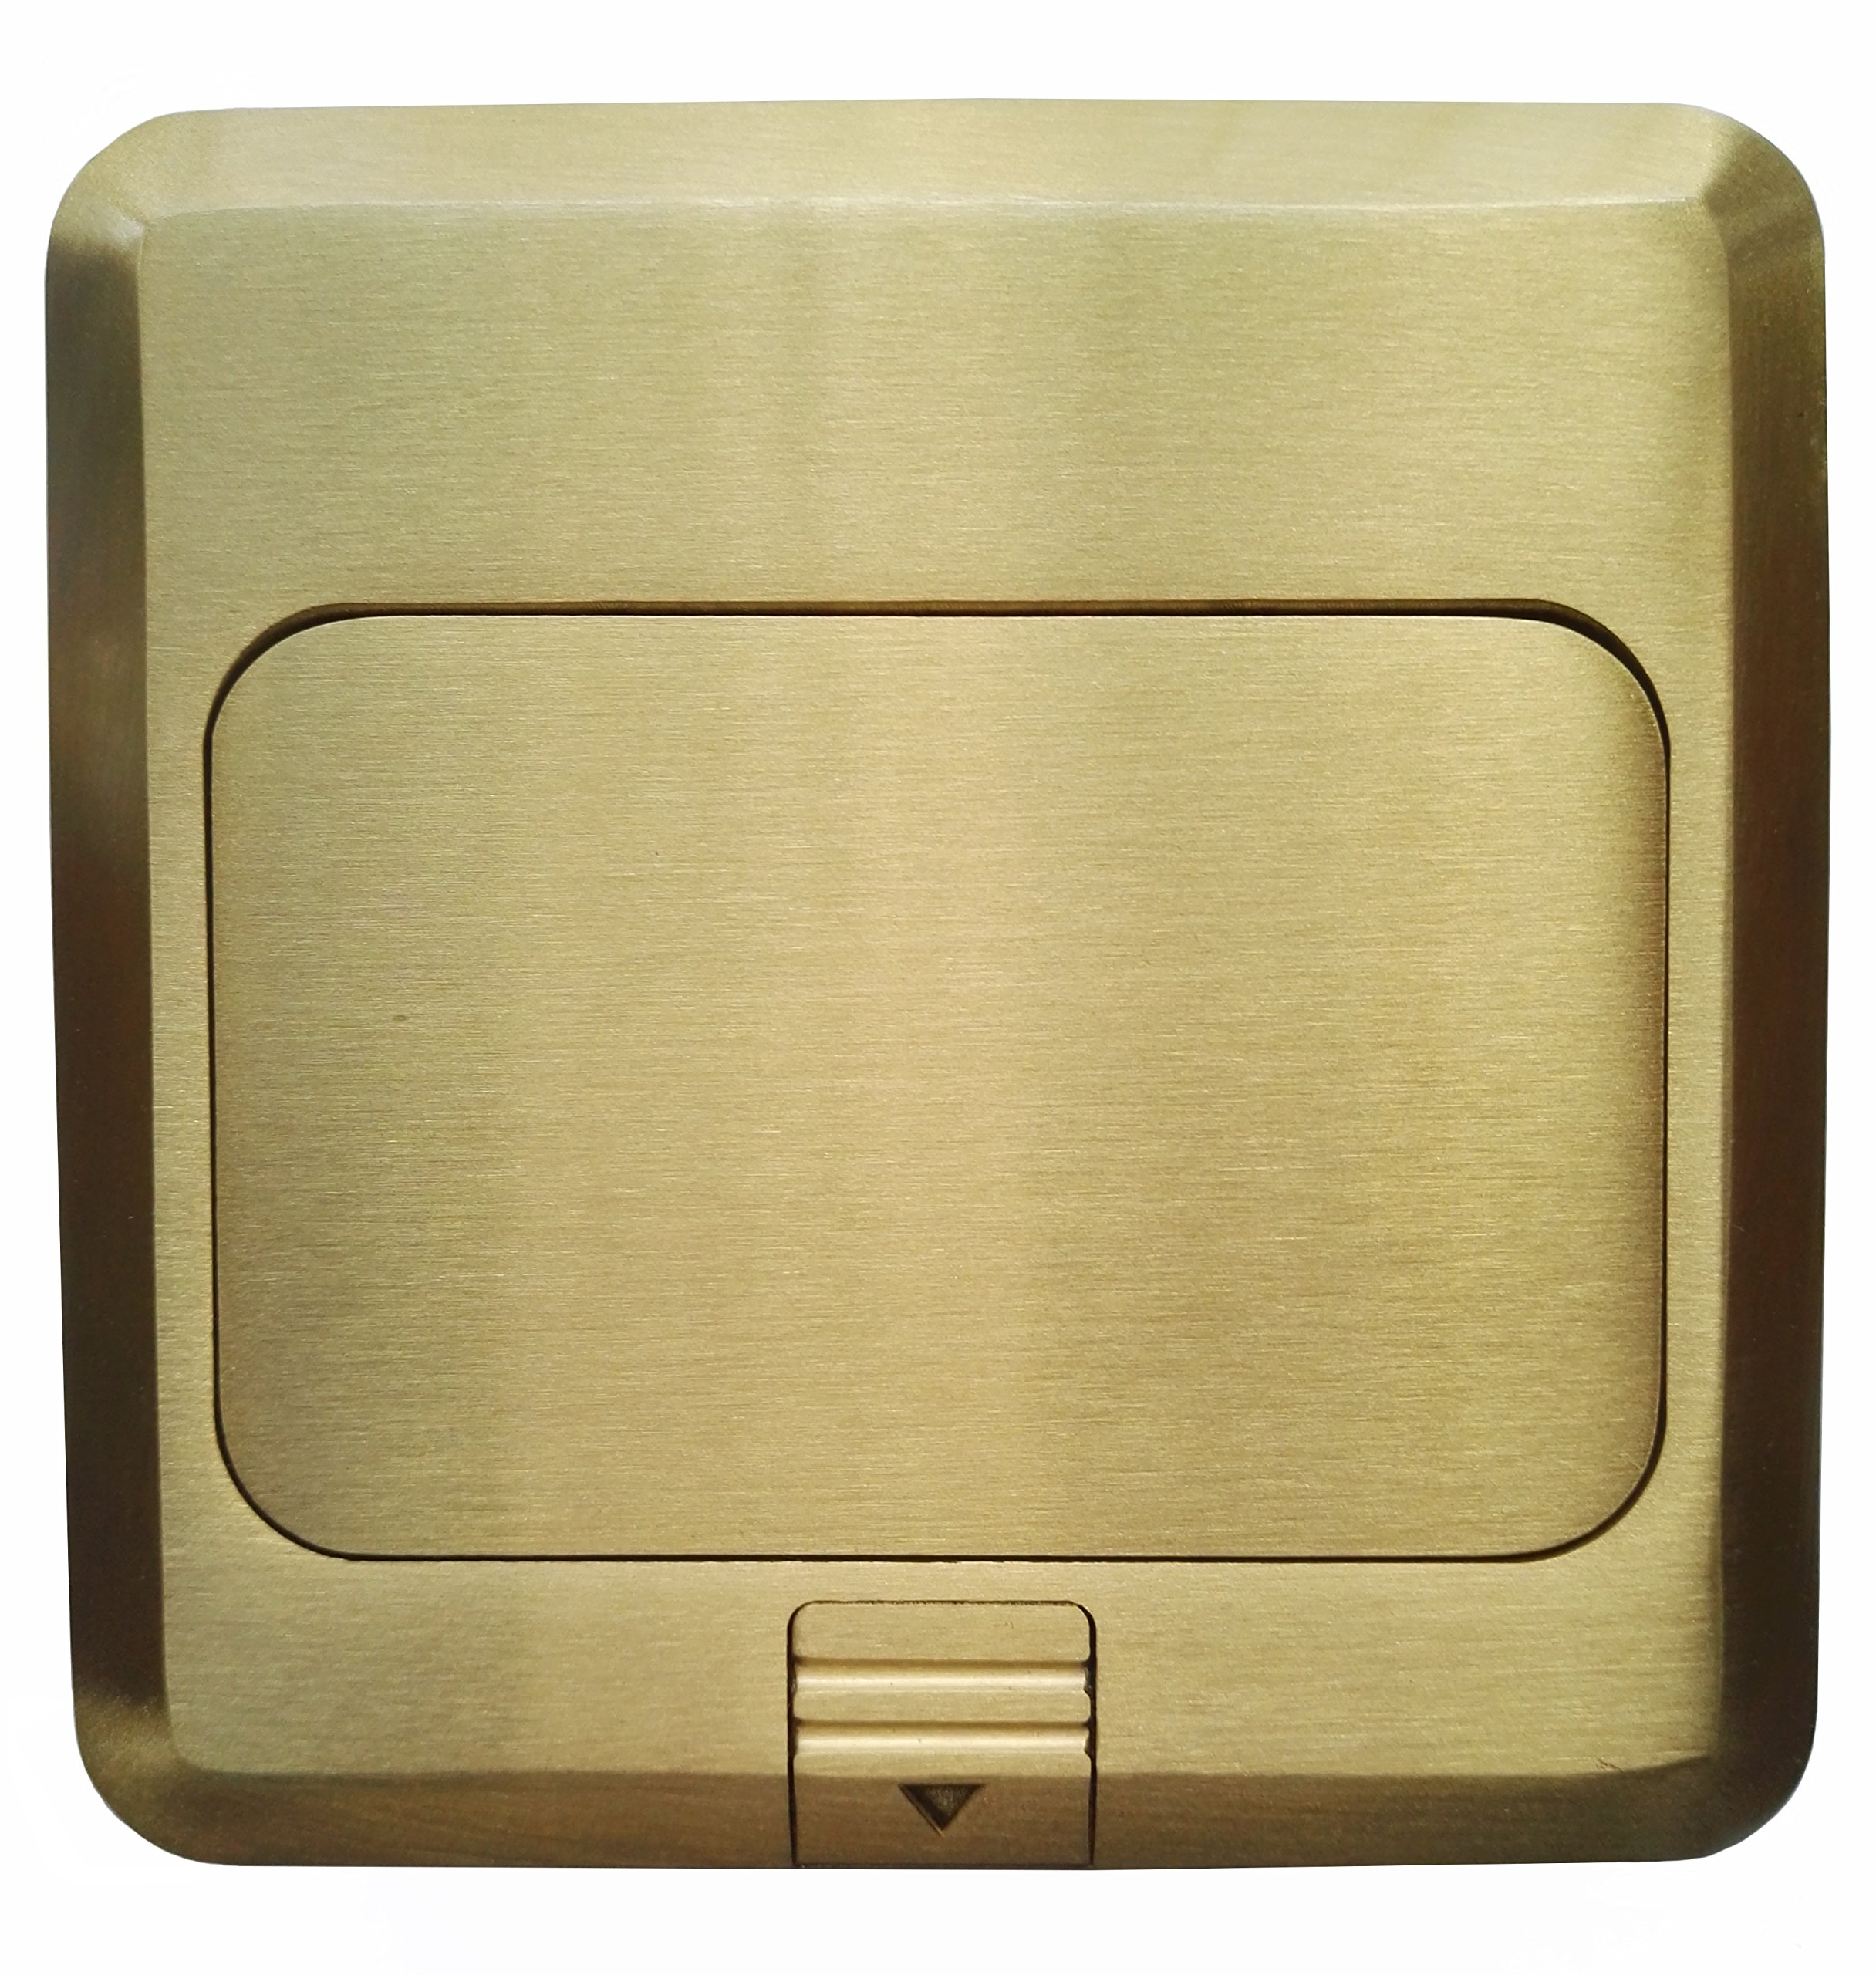 Pop Up Floor Box Countertop Box w/15A with 2 USB Charging Ports Receptacle - Brass